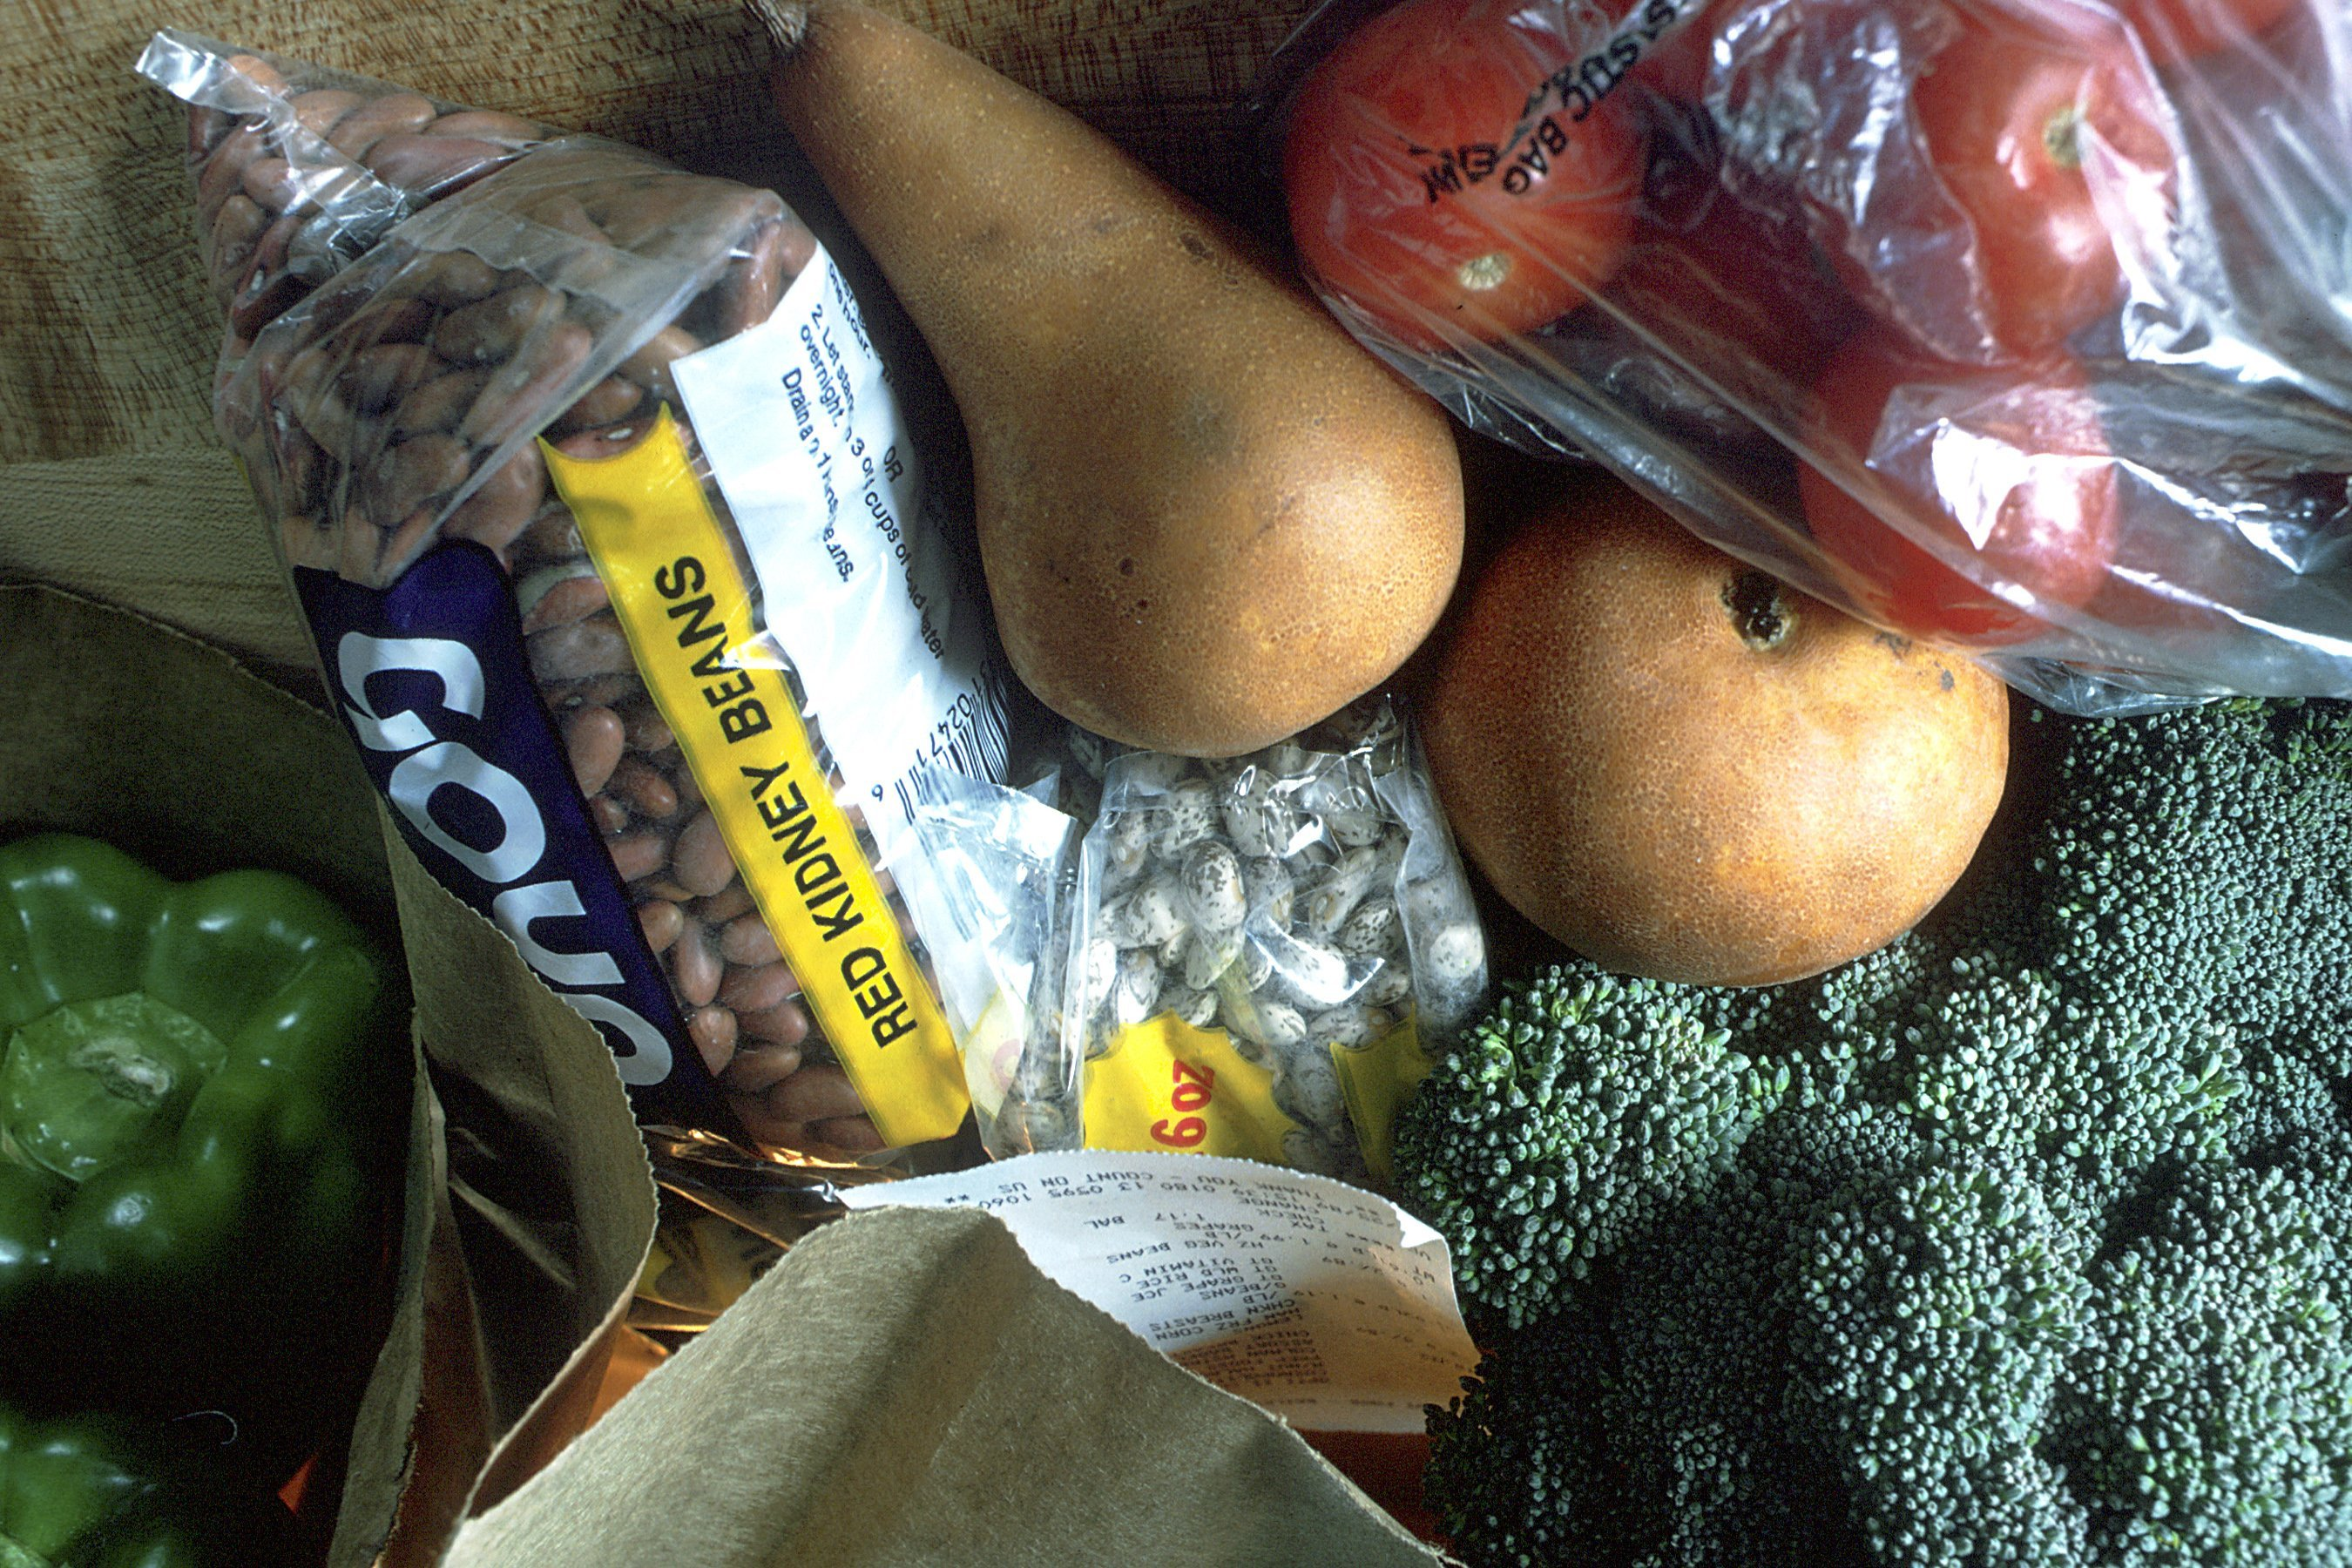 Grocery_bag_of_healthy_foods